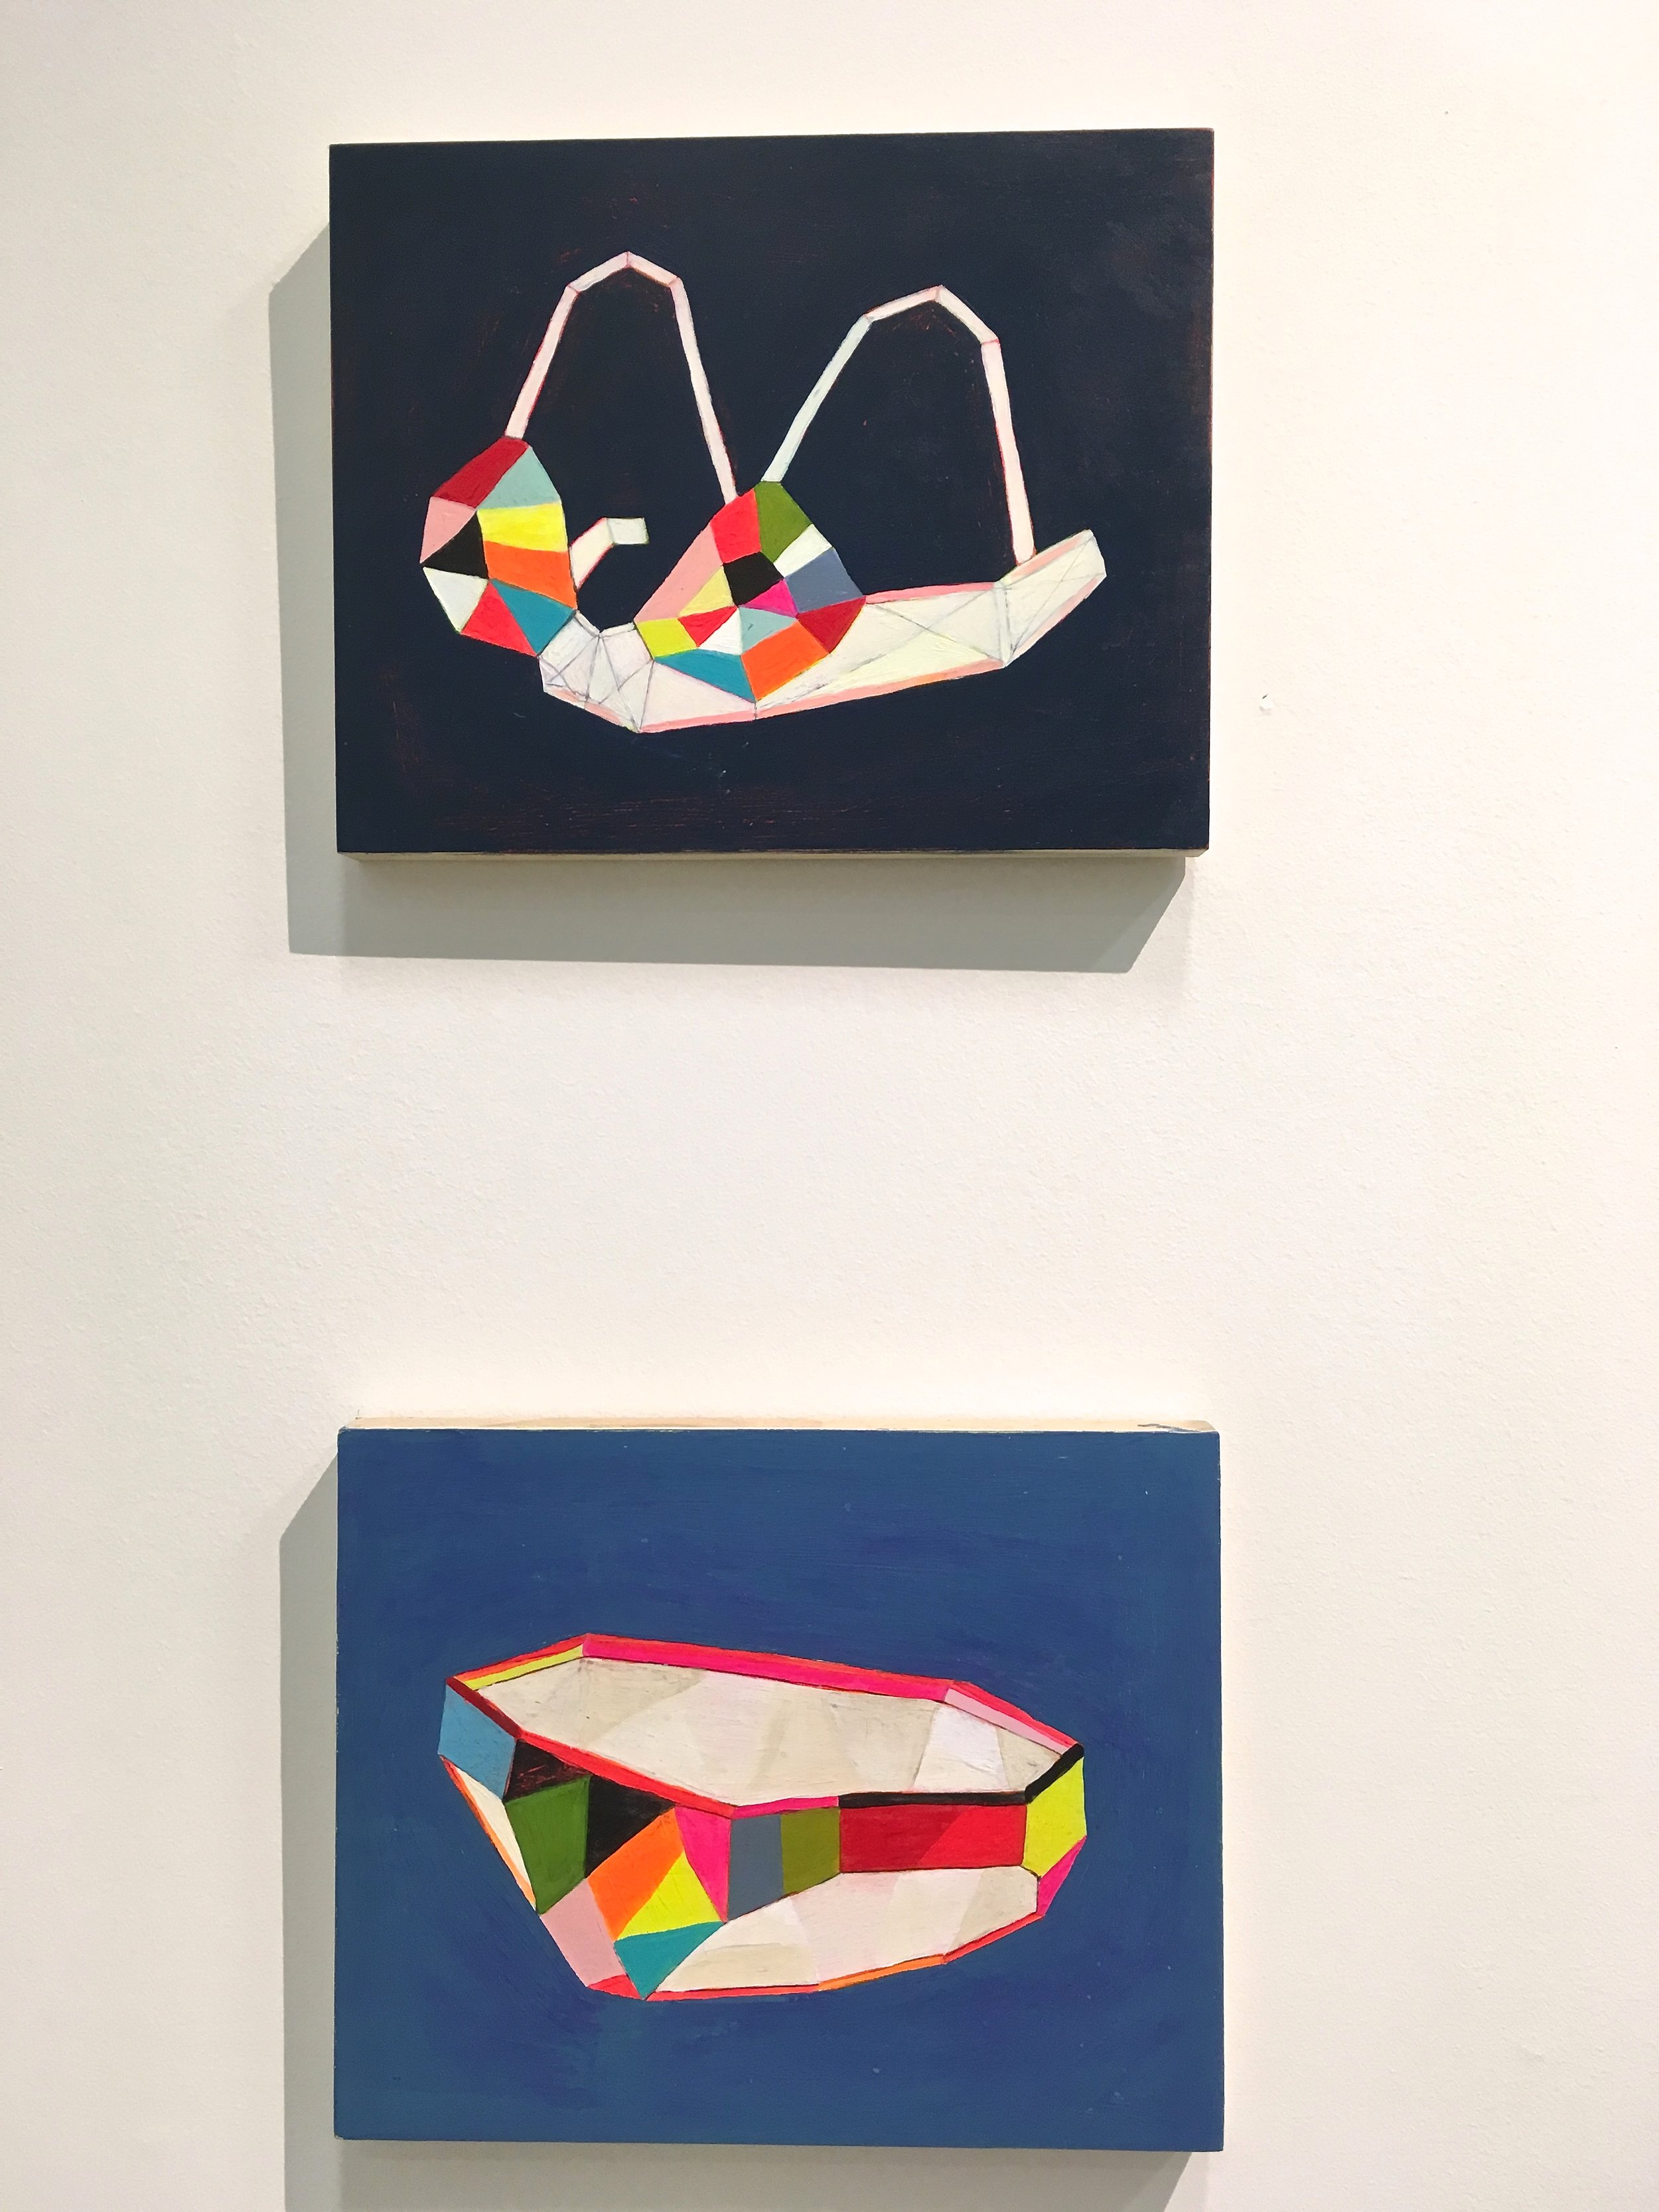 I wish I could have added these geometric beauties by Martha Rich to our art collection at home. The graphic pops of colour are so delightful.